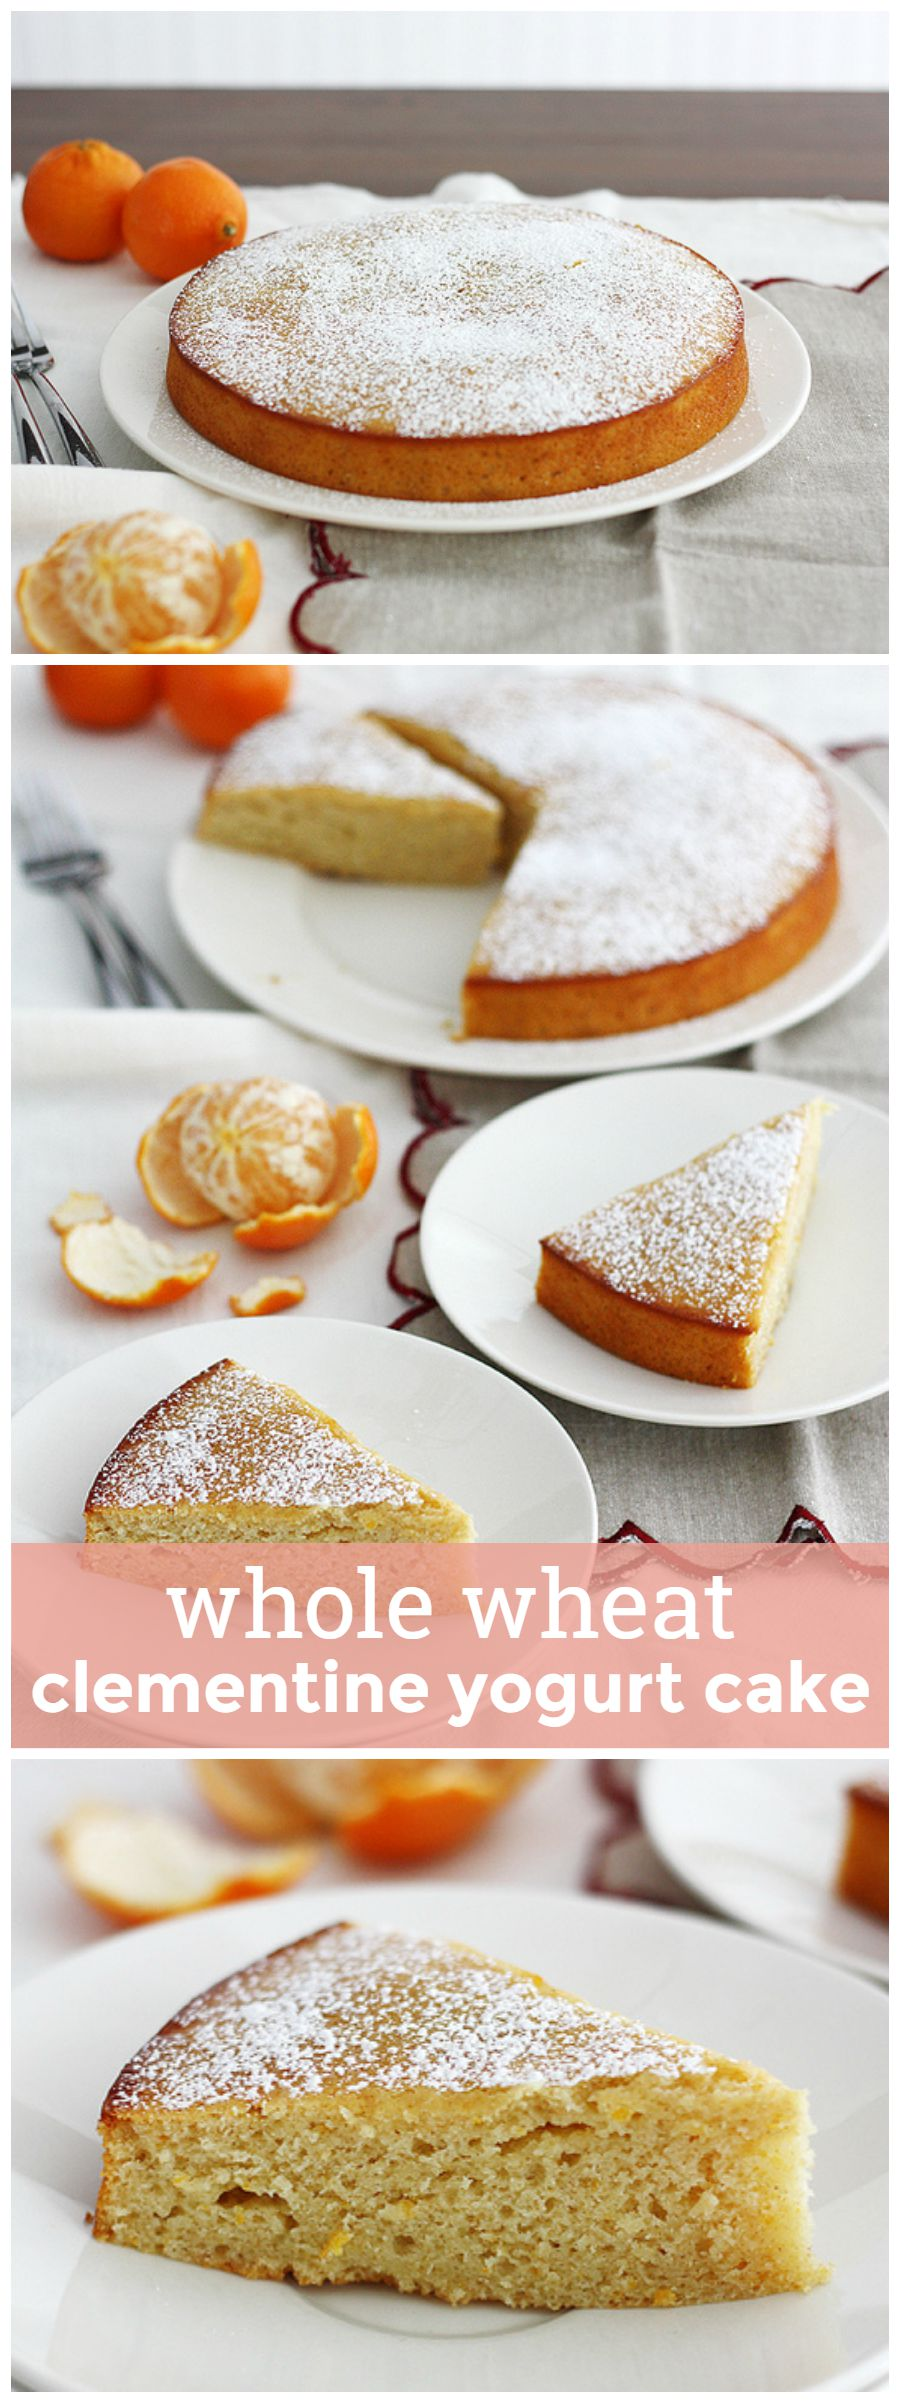 Whole Wheat Clementine Yogurt Cake -- this whole wheat cake is sweet, citrus-y and perfect for any occasion that calls for a treat. girlversusdough.com @girlversusdough